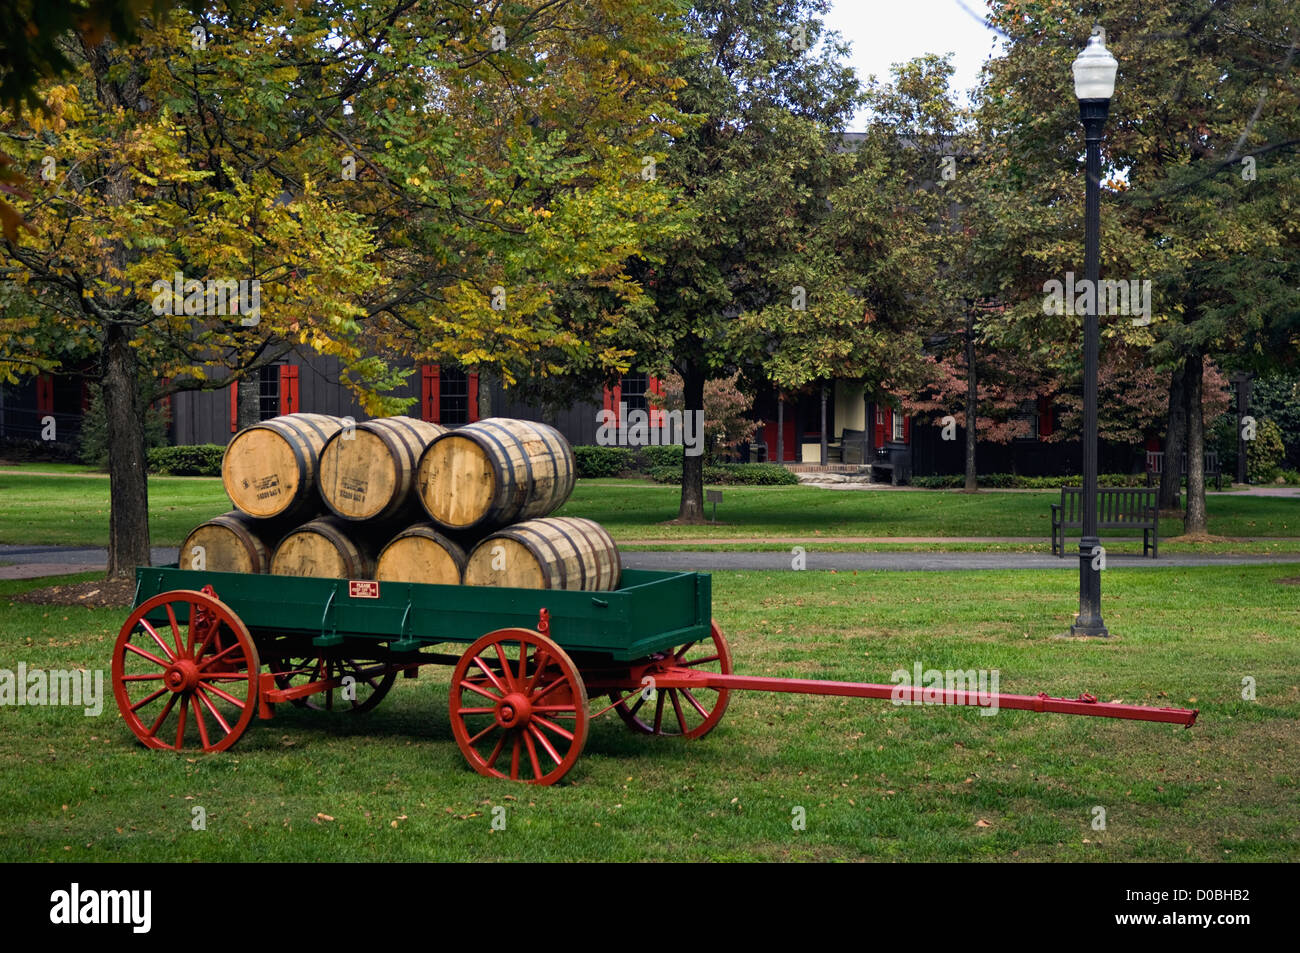 Wagon with Bourbon Barrels at Maker's Mark Distillery in Loretto, Kentucky - Stock Image